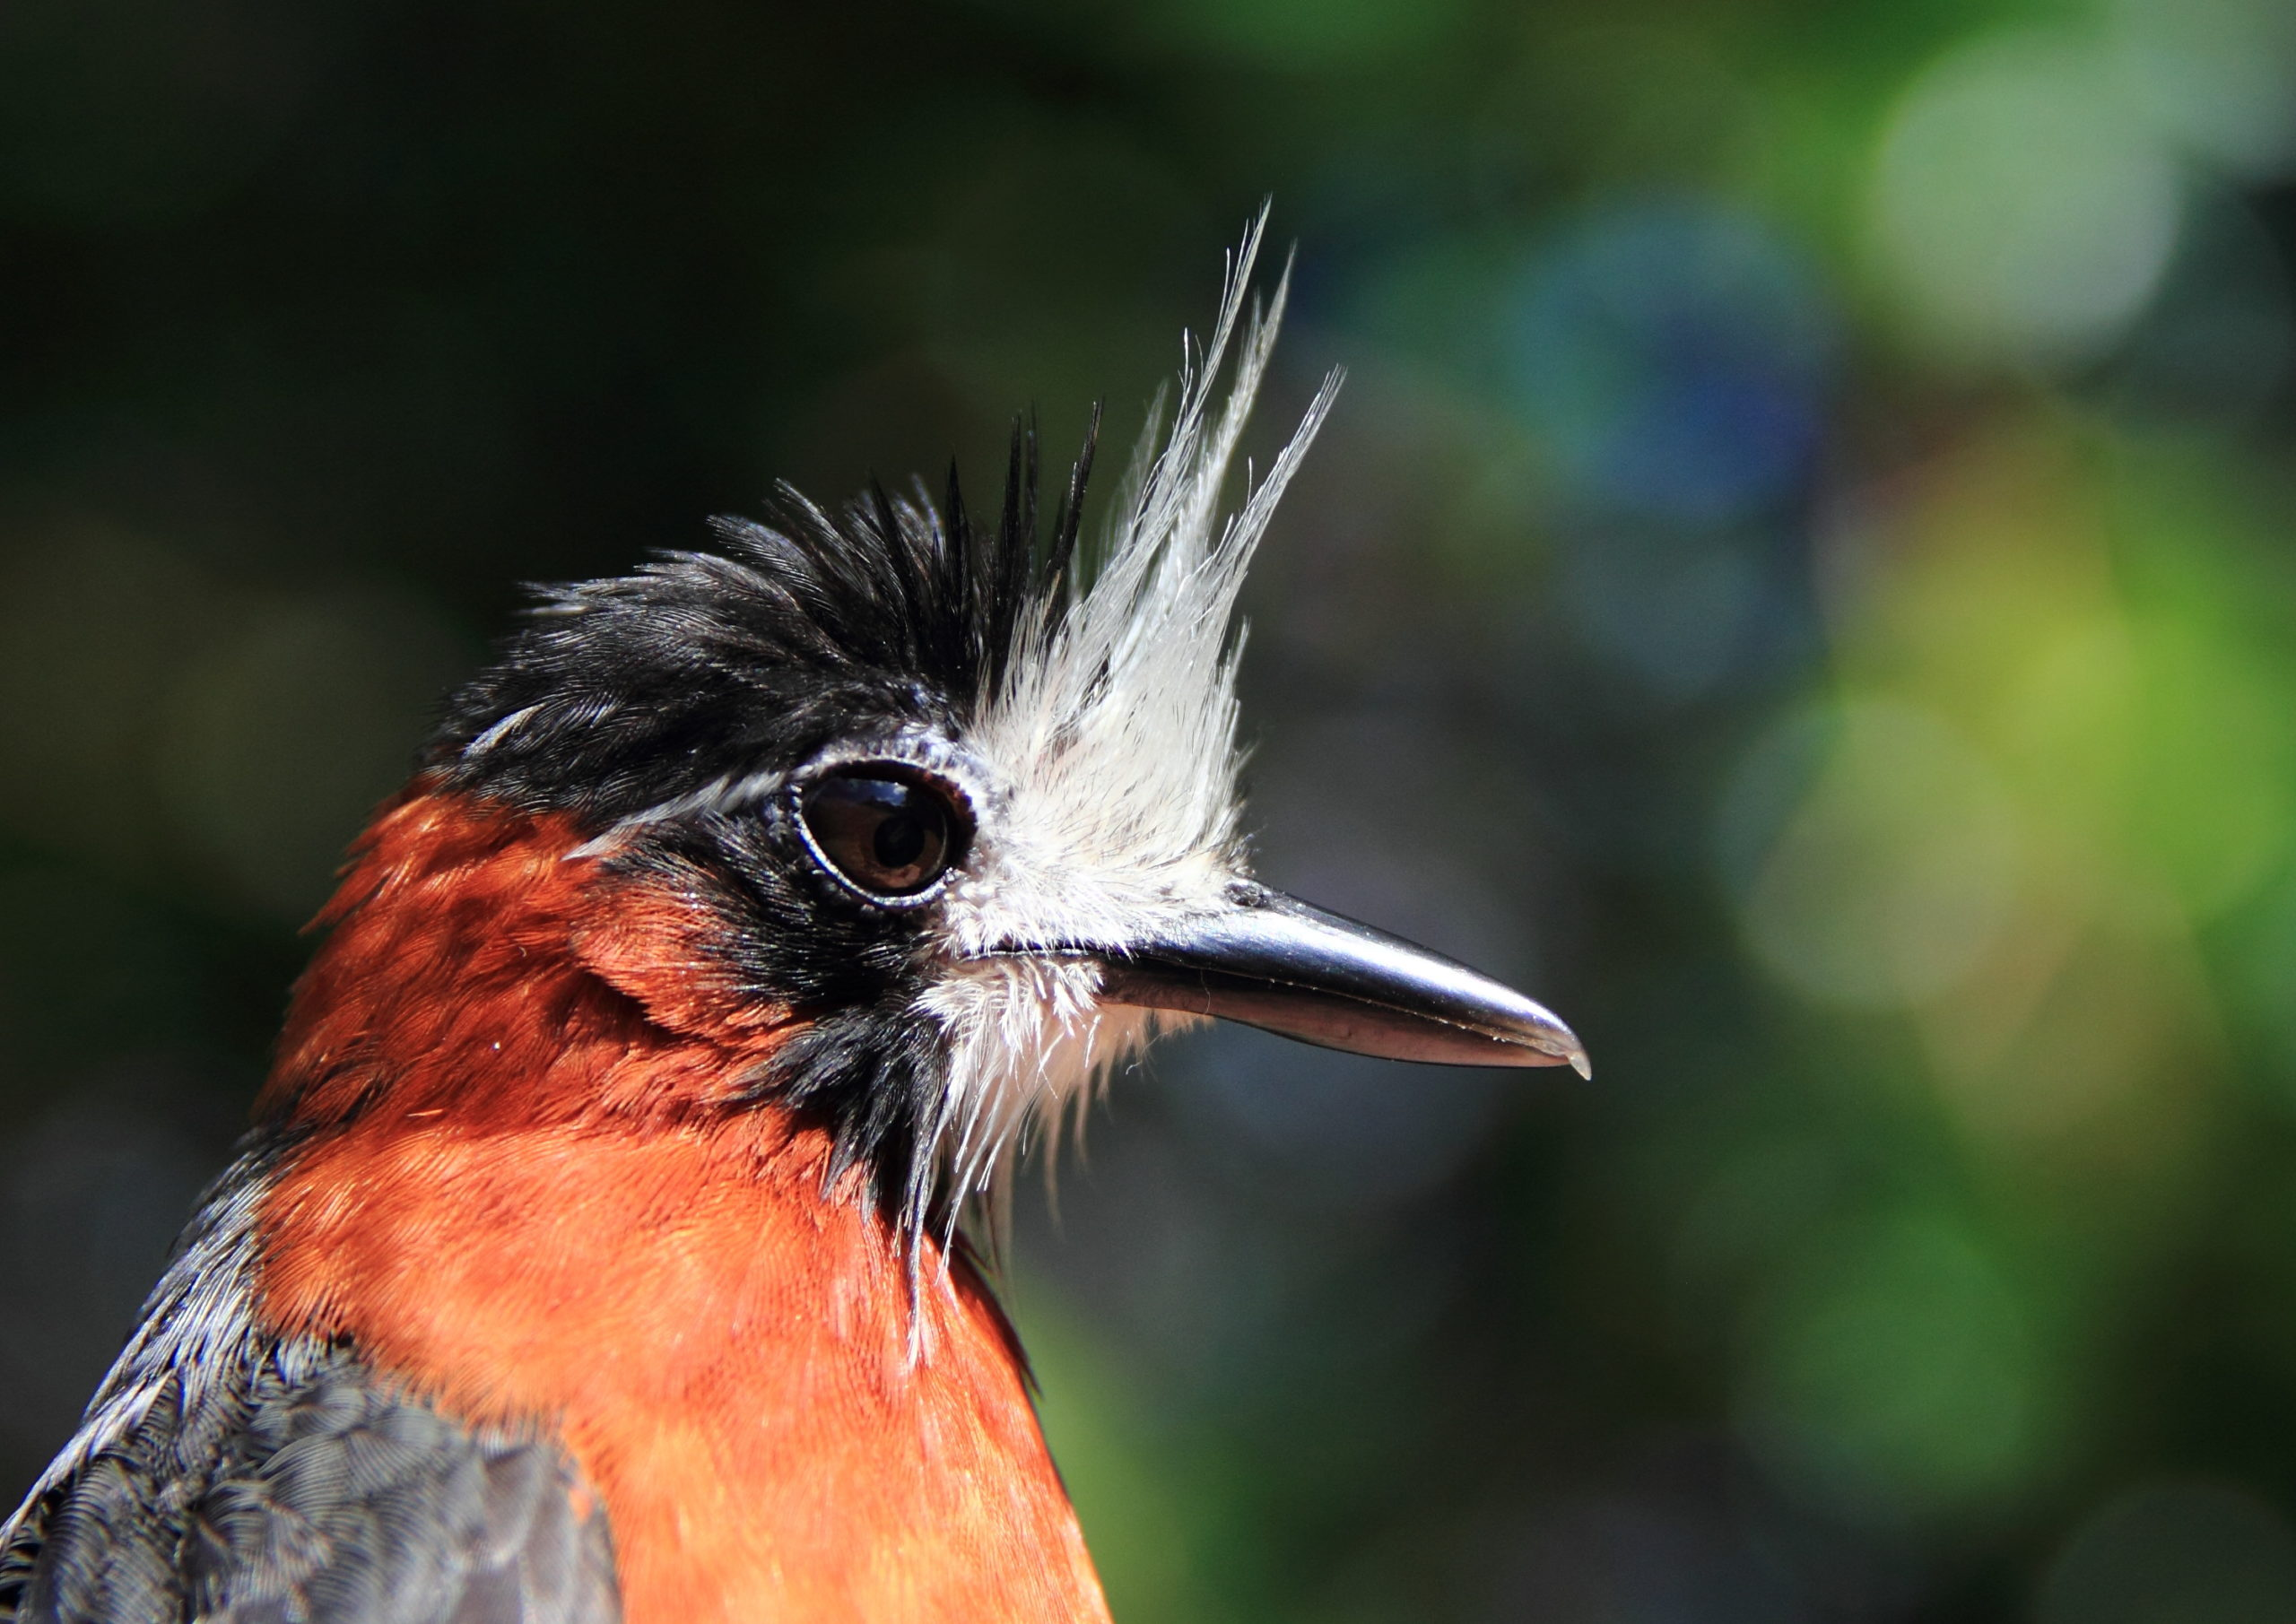 close up of a red and gray bird with a white plume on its face